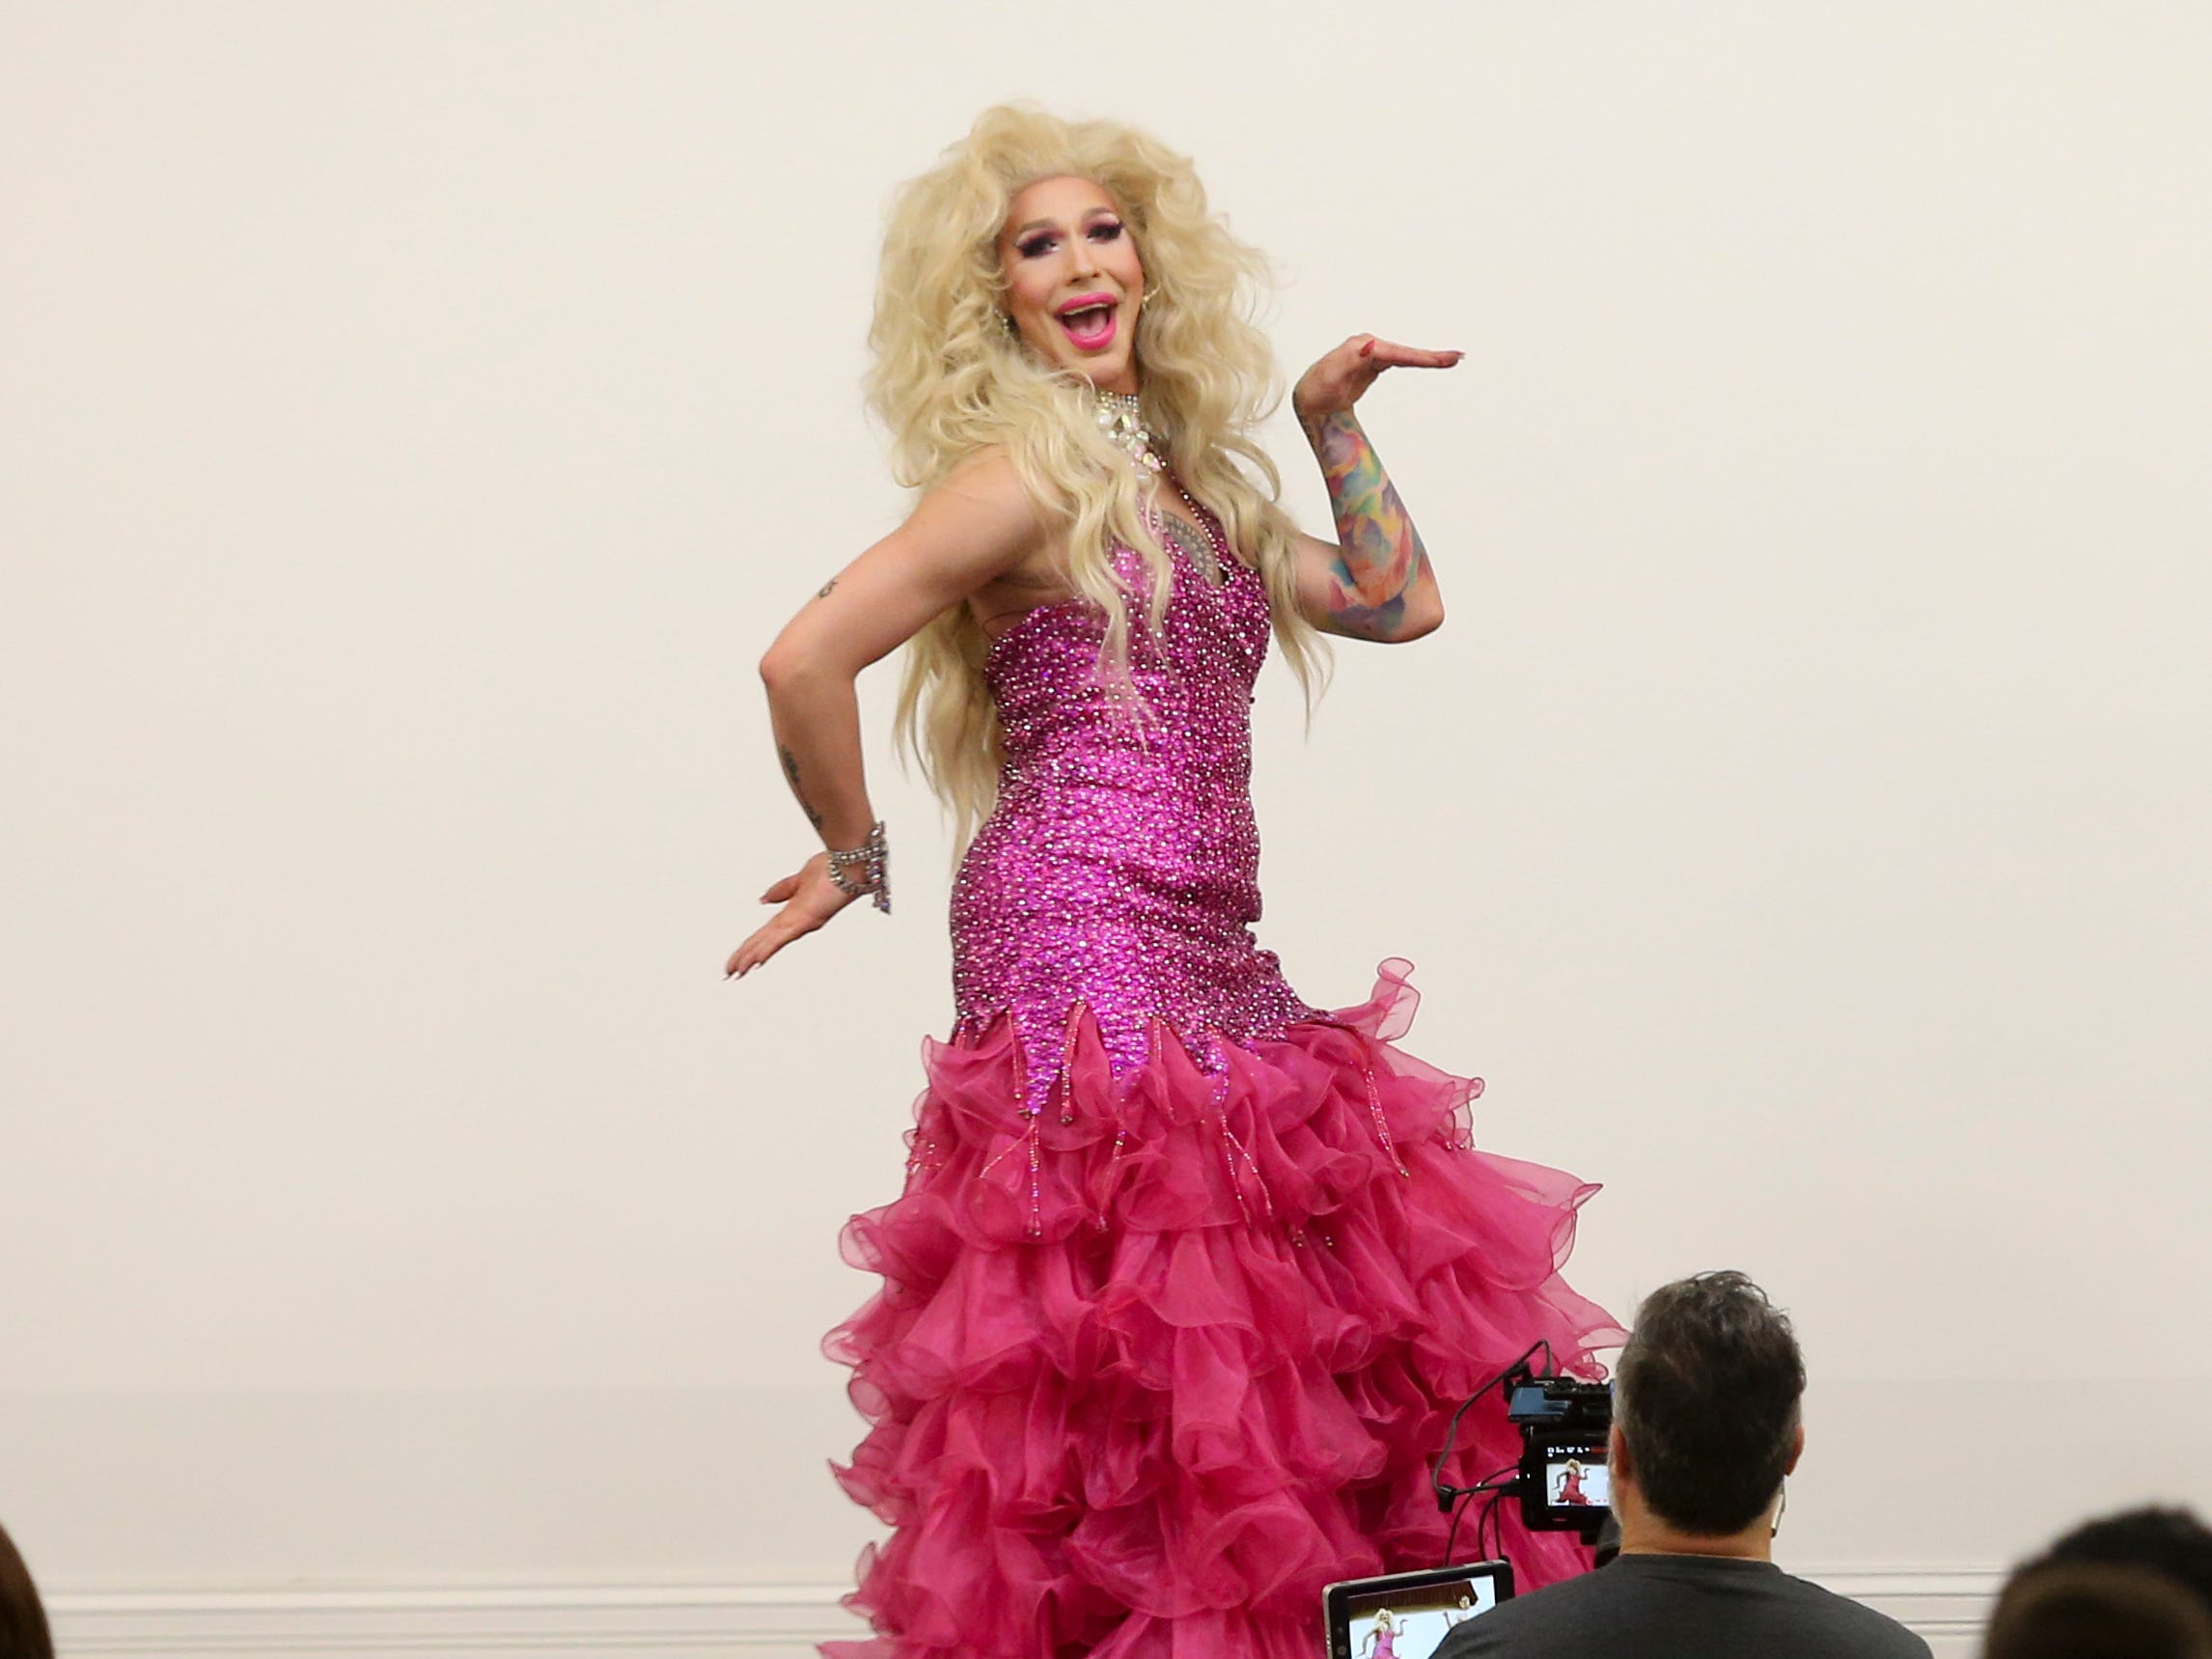 Drag Queen Storytime in Louisville relays message of acceptance despite protests